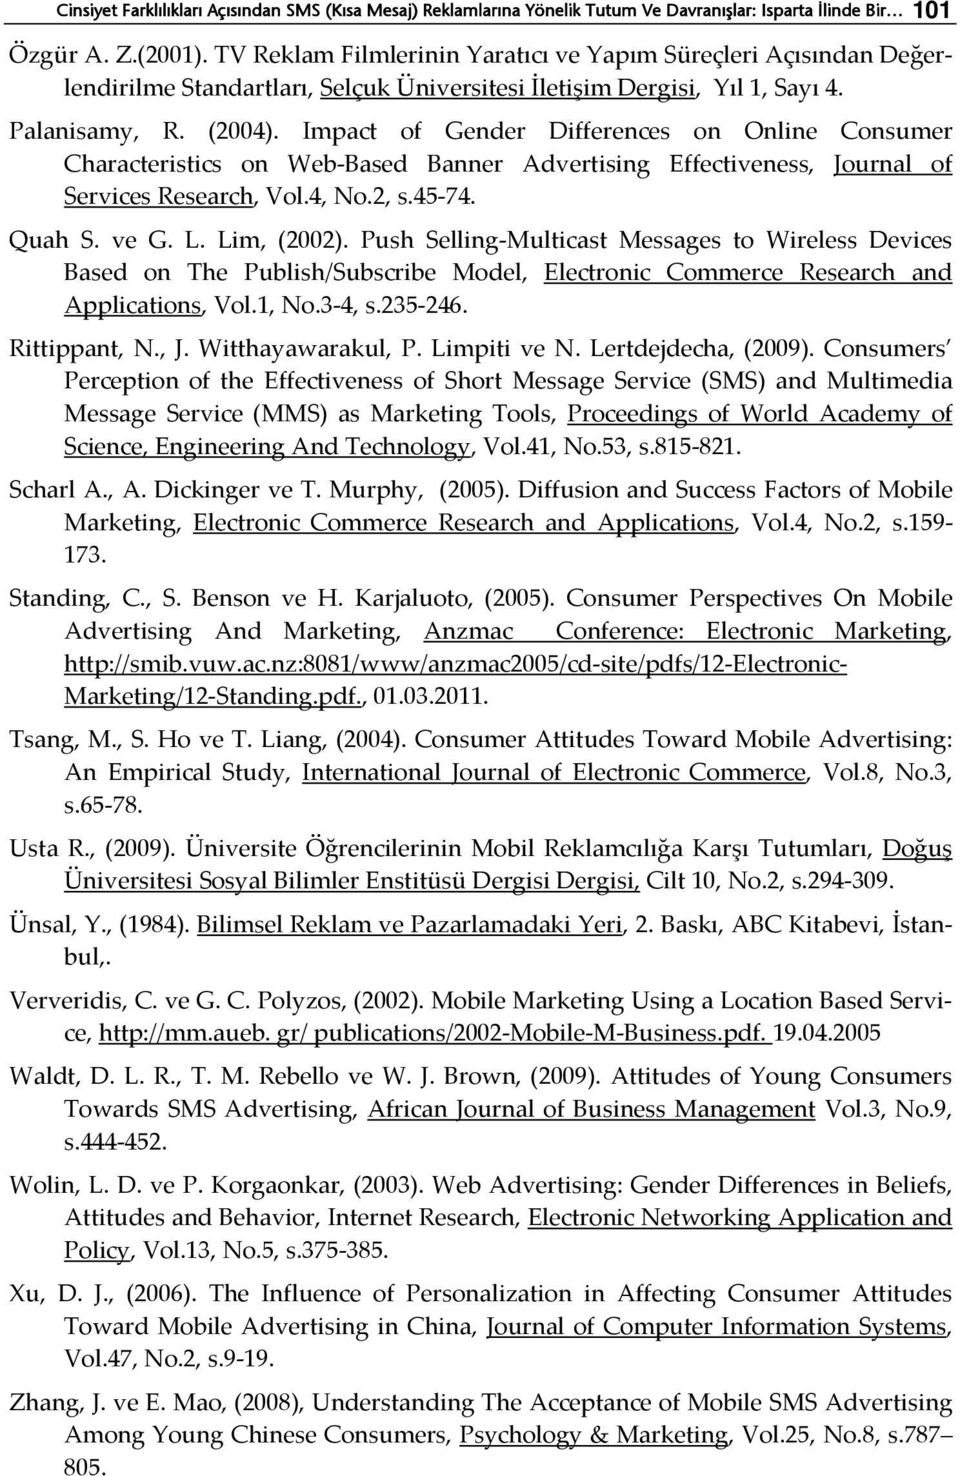 Impact of Gender Differences on Online Consumer Characteristics on Web-Based Banner Advertising Effectiveness, Journal of Services Research, Vol.4, No.2, s.45-74. Quah S. ve G. L. Lim, (2002).